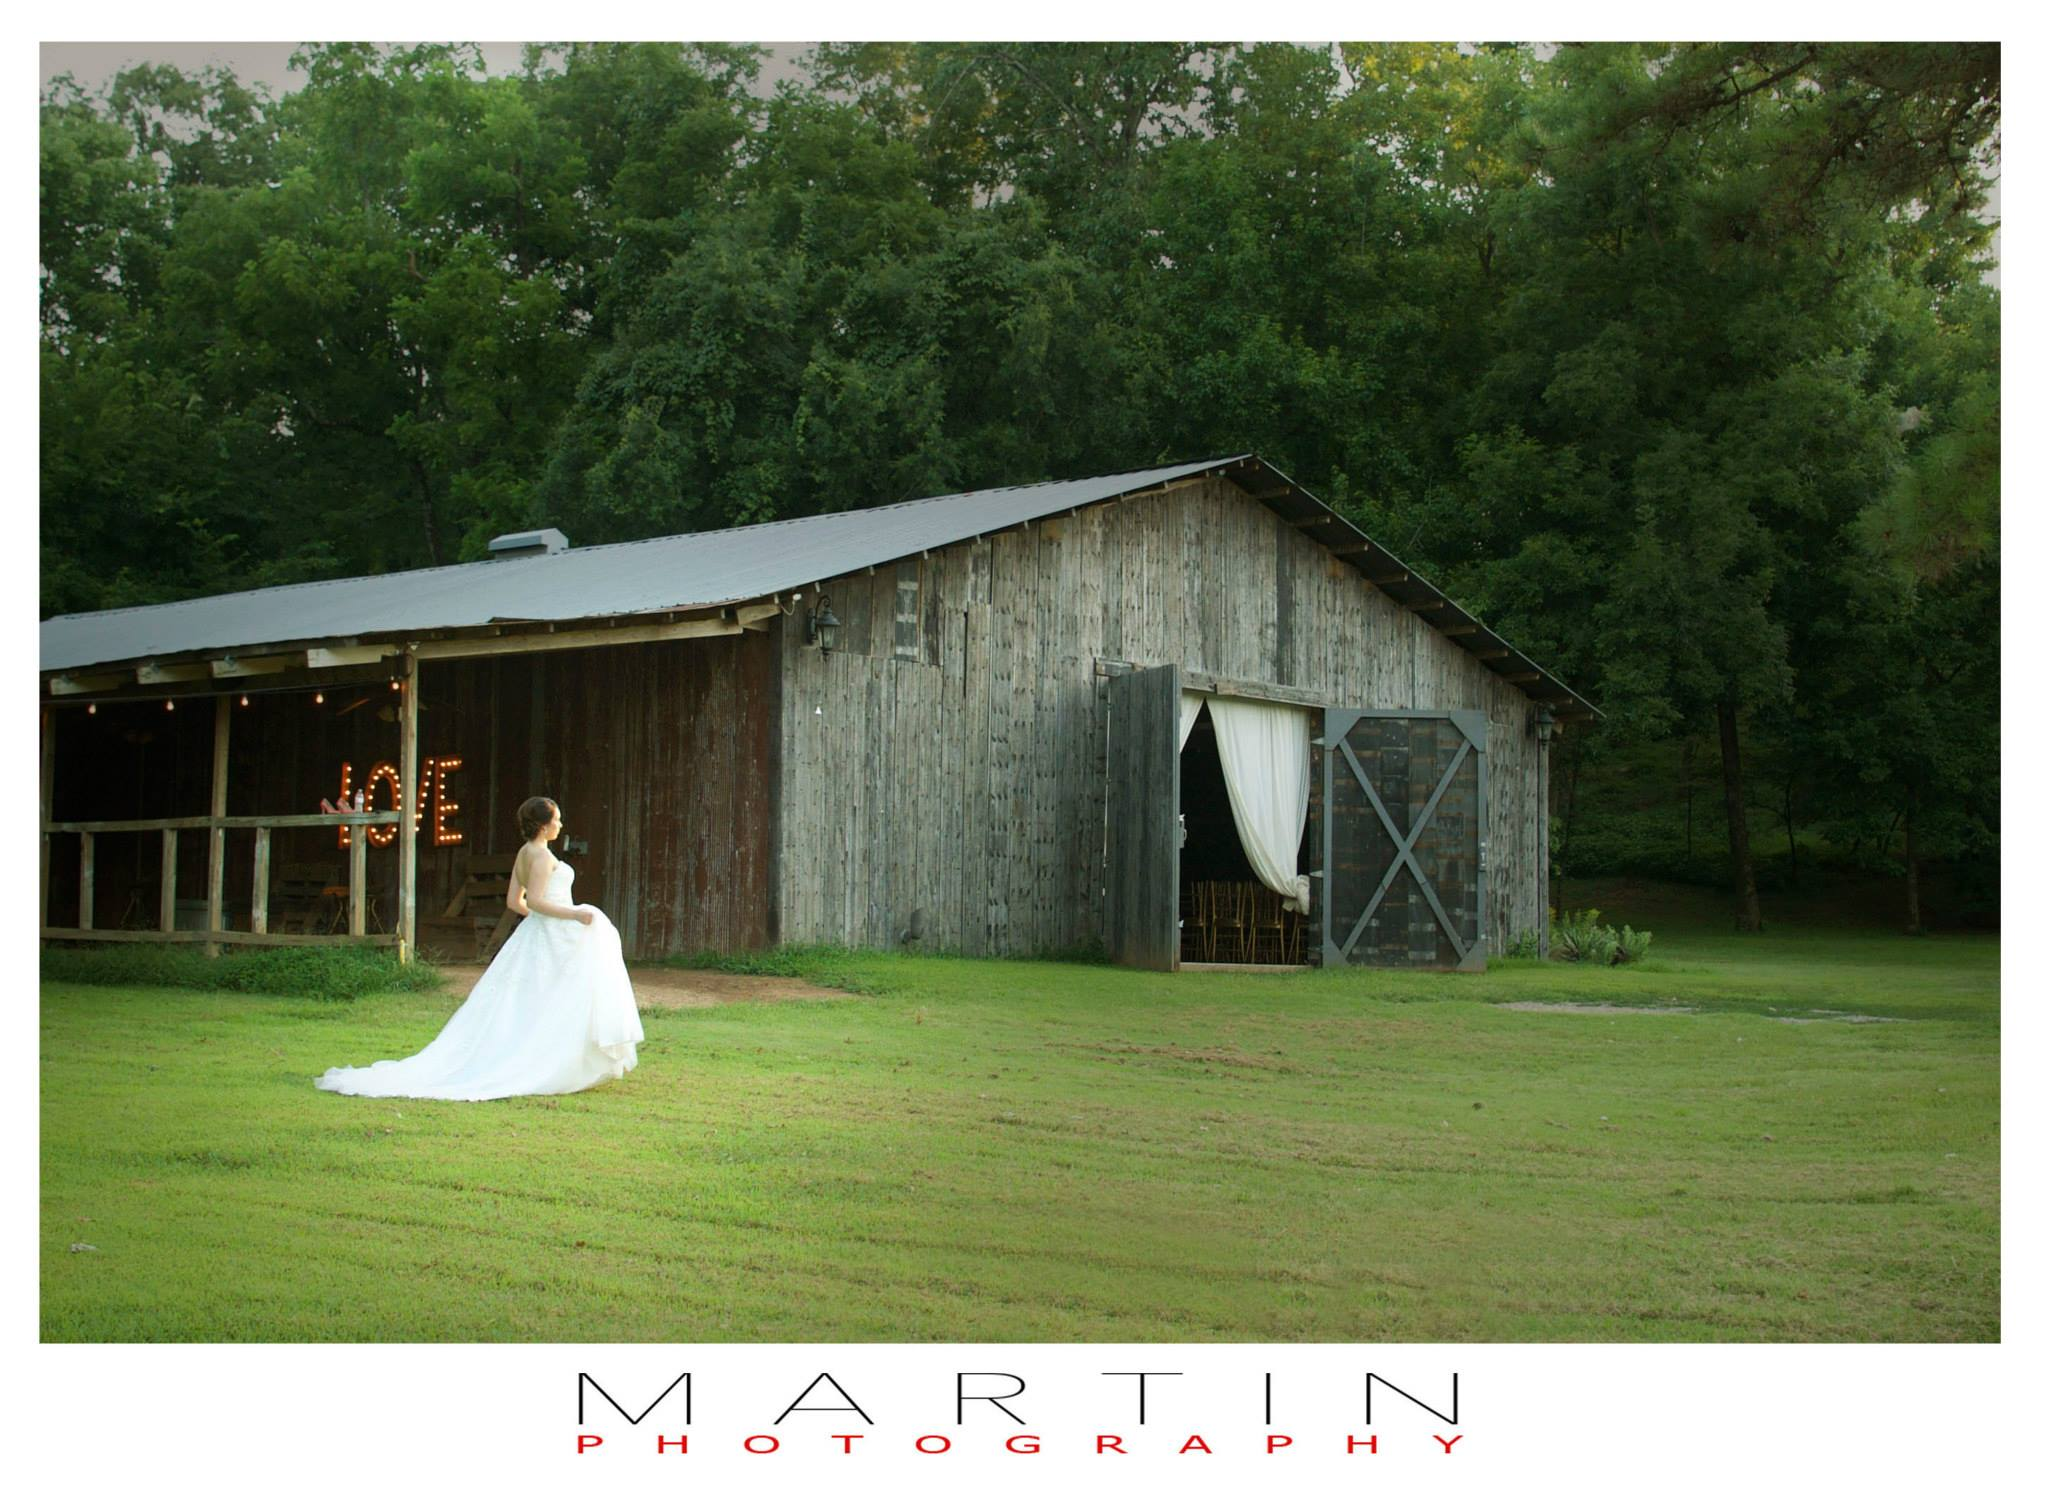 Martin's Photography . Monica + Luis were married at The Barn this summer. We can't wait to share their wedding photos with you, but in the meantime, go look through  Monica 's stunning bridals! We adore them!